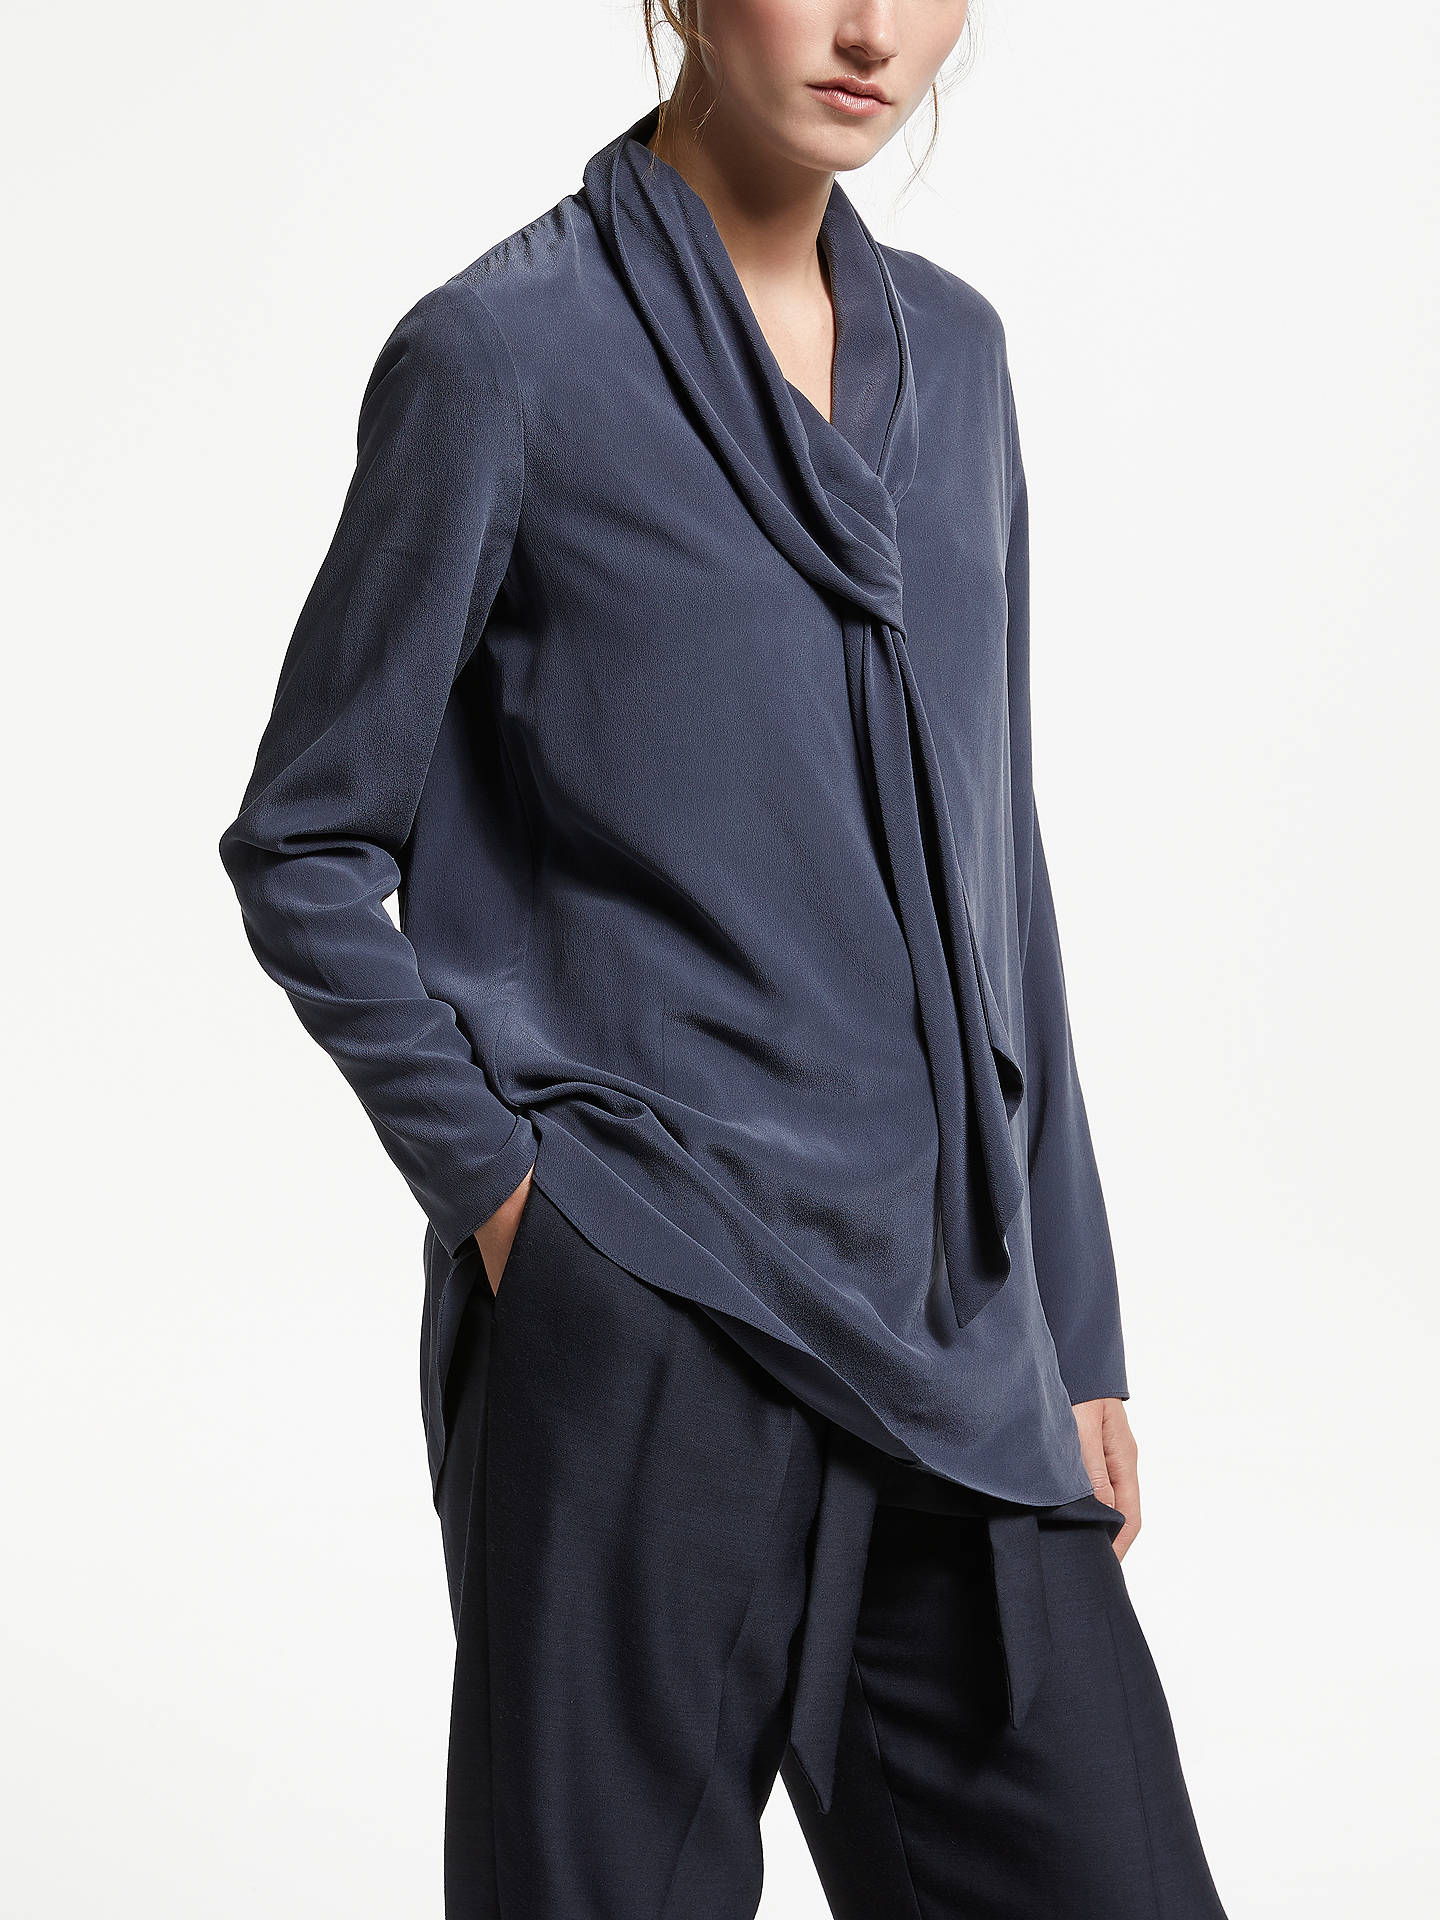 BuyModern Rarity Tie Neck Silk Blouse, Blue Steel, 8 Online at johnlewis.com